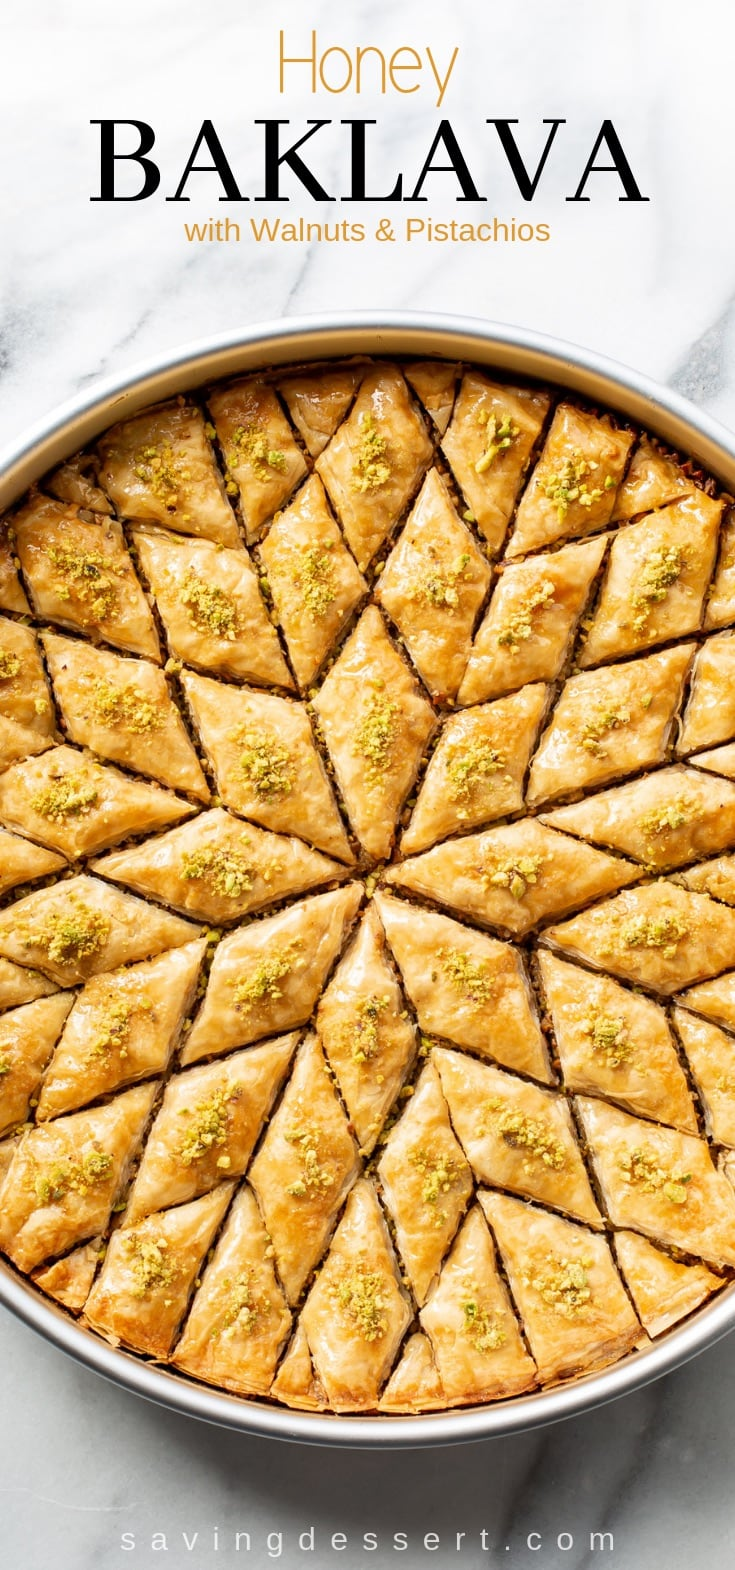 Honey Baklava Recipe with Walnuts and Pistachios - layers and layers of flaky phyllo slathered with melted butter, honey and loads of nuts - who can resist a slice of this delicious Honey Baklava Recipe #baklava #honeybaklava #pistachiobaklava #walnutbaklava #Greekbaklava #honey #dessert